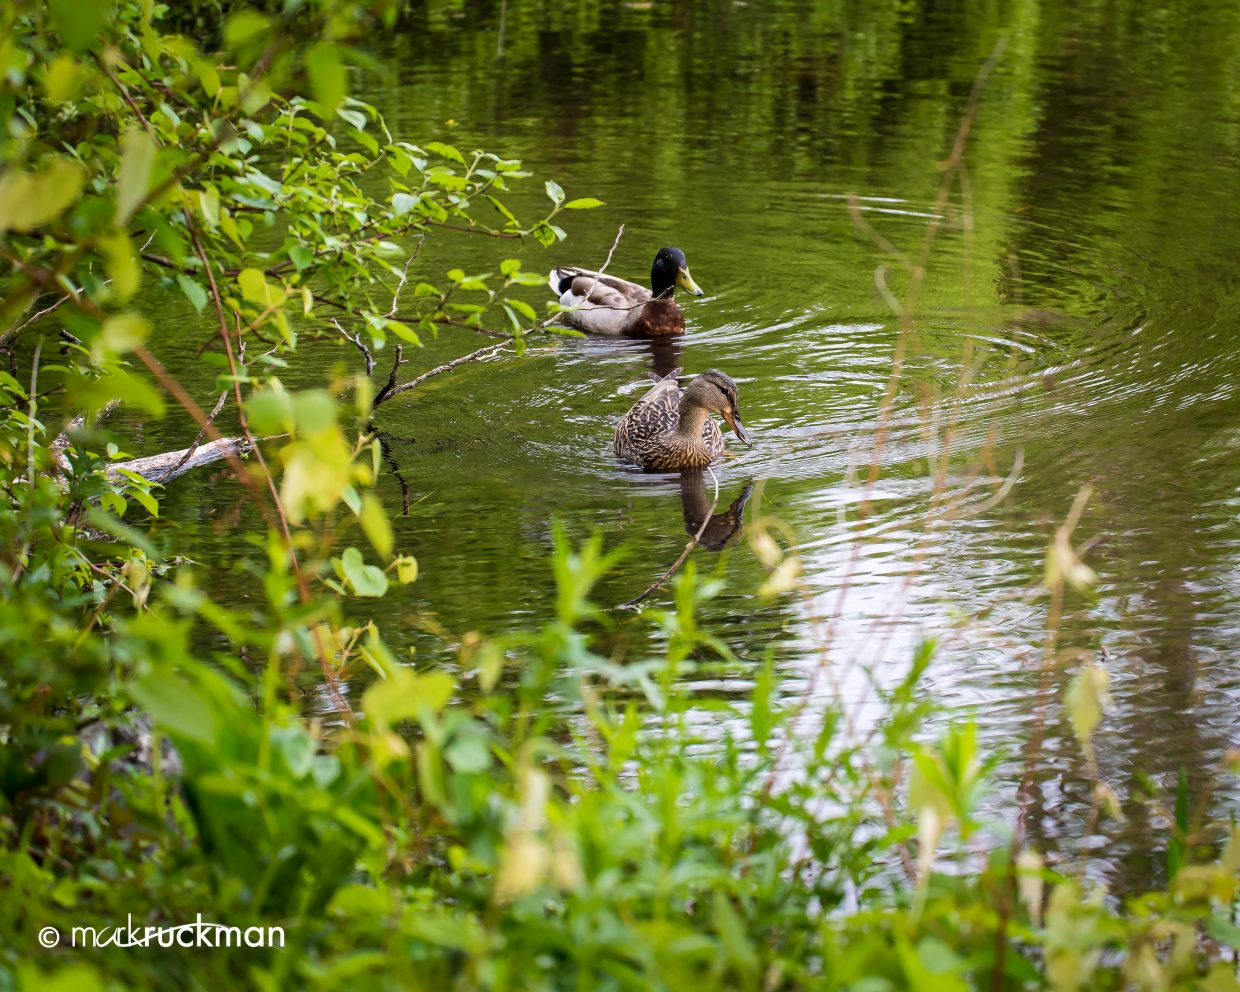 Ducks on a pond. Submitted by: Mark Ruckman